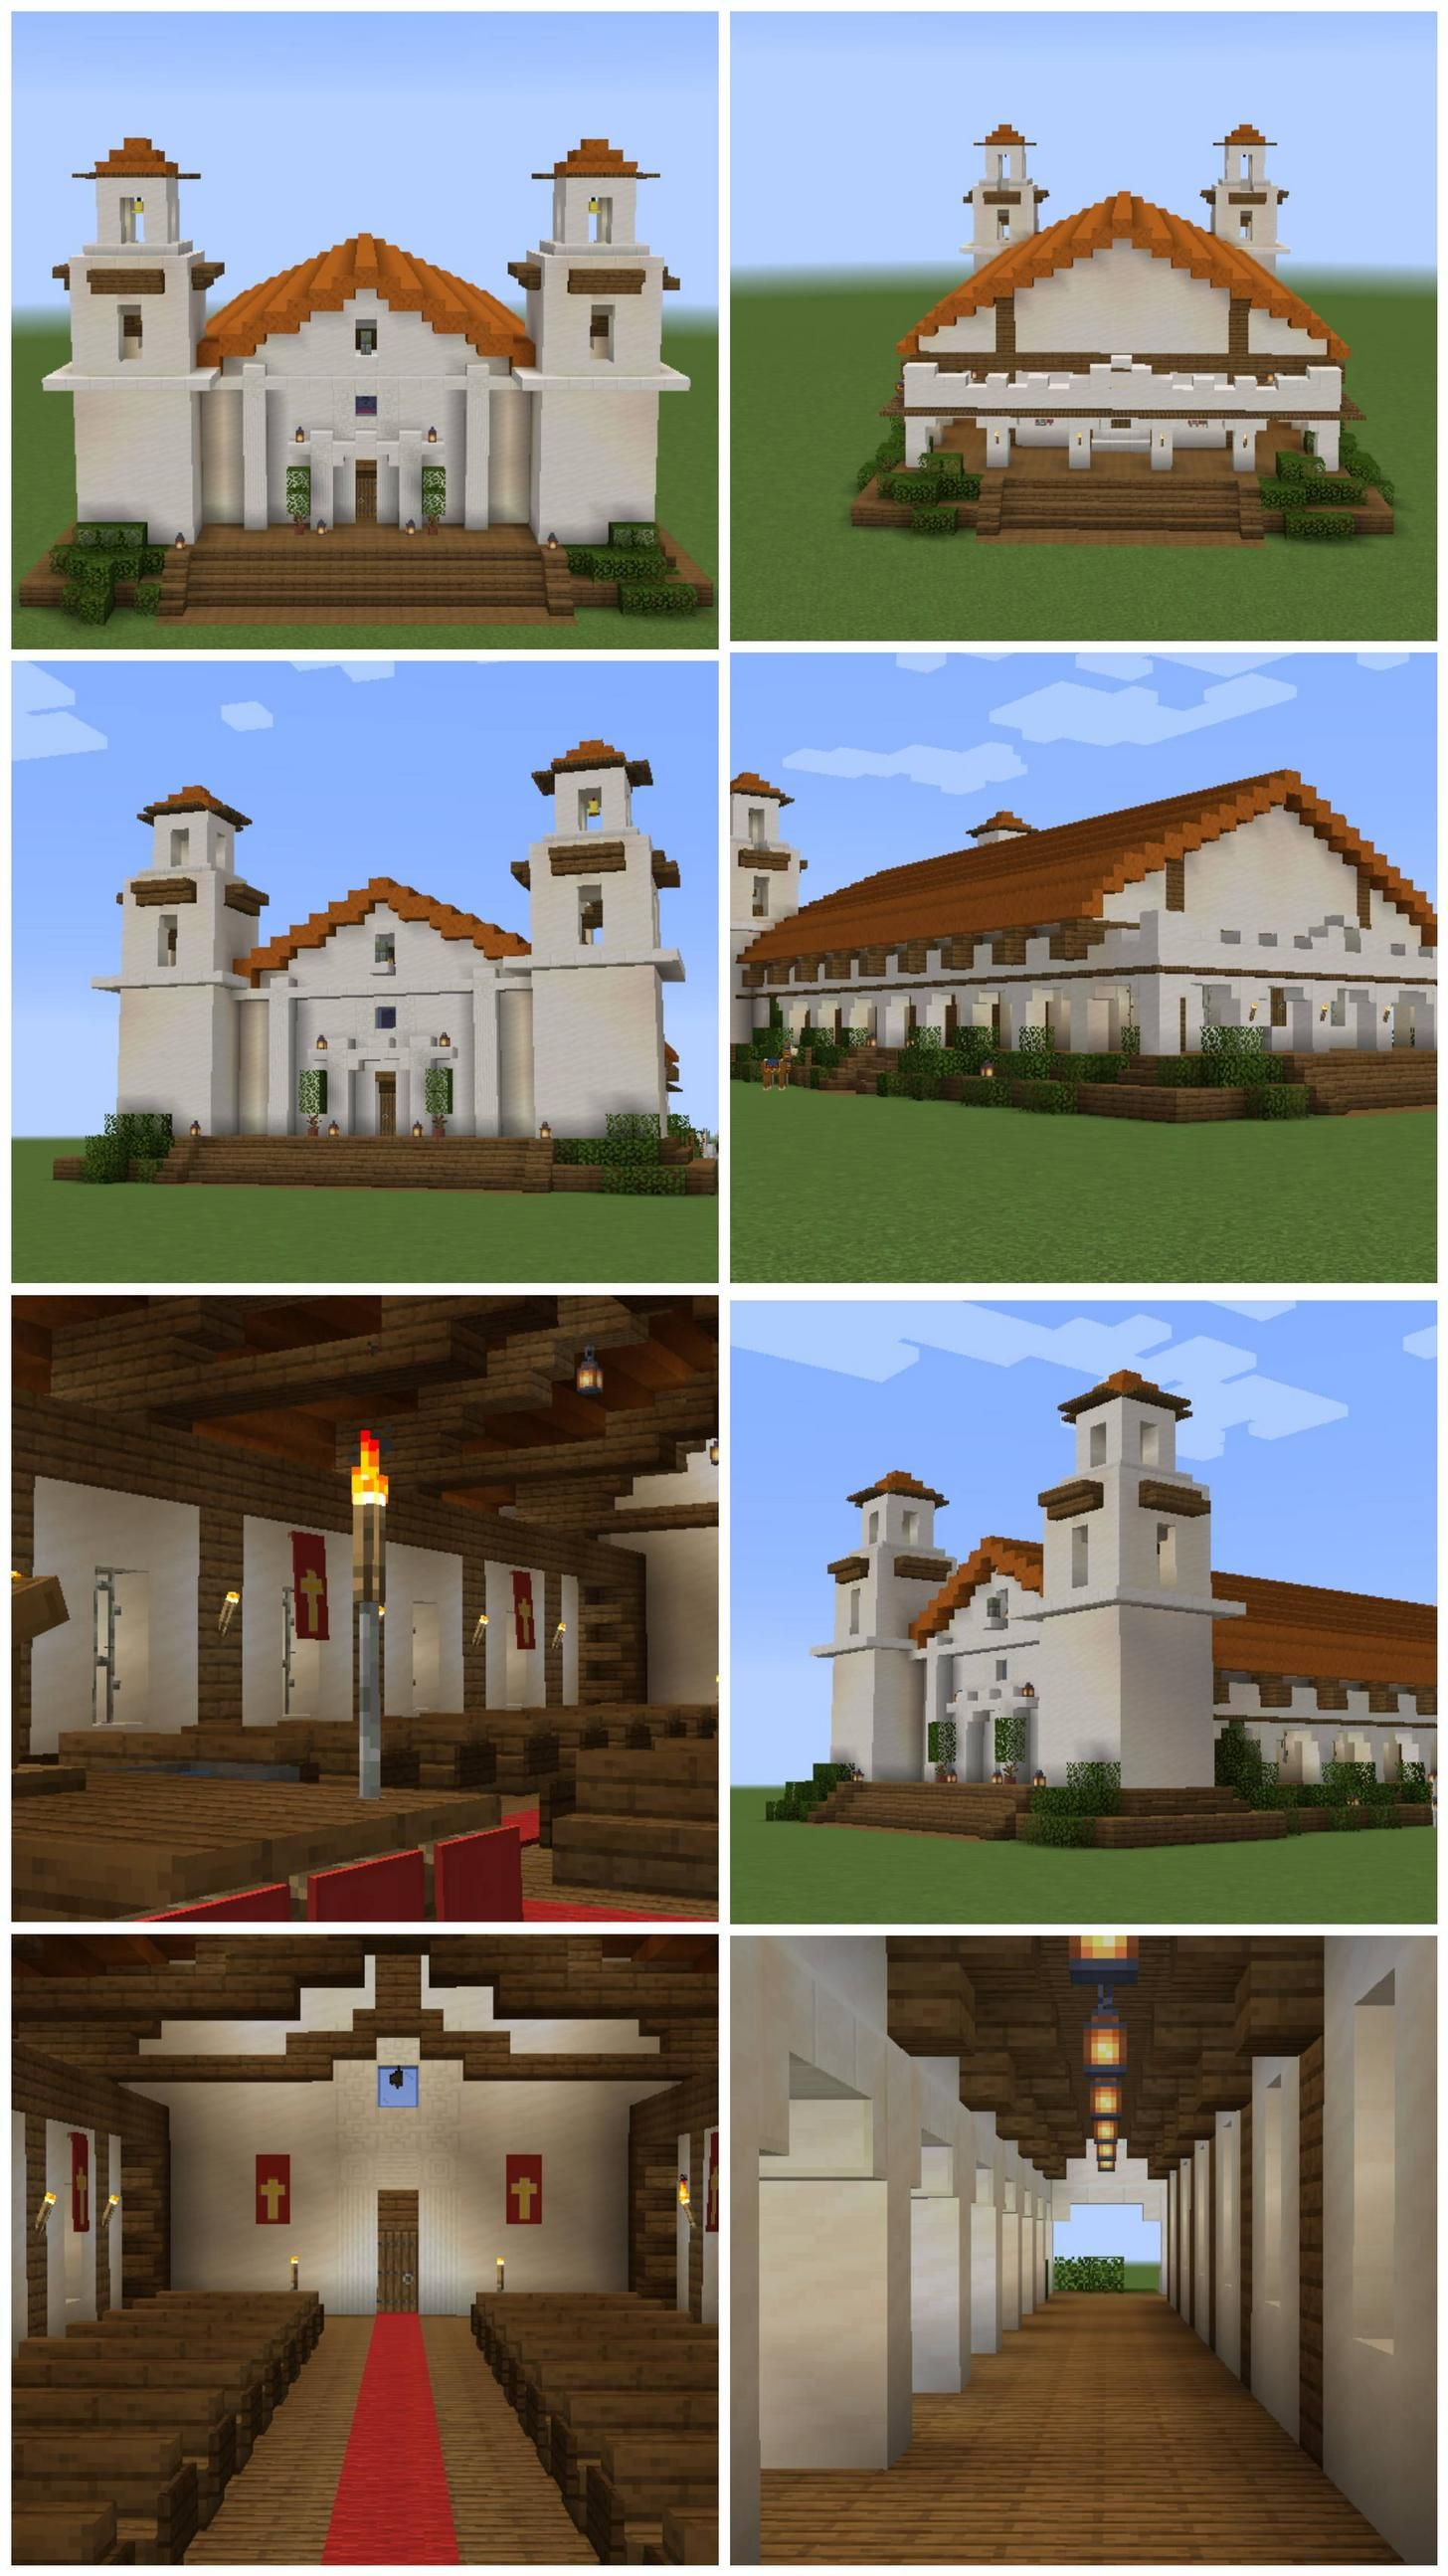 Spanish Villa Minecraft : spanish, villa, minecraft, Spanish, Mission, Built., Minecraft, House, Plans,, Stables,, Houses